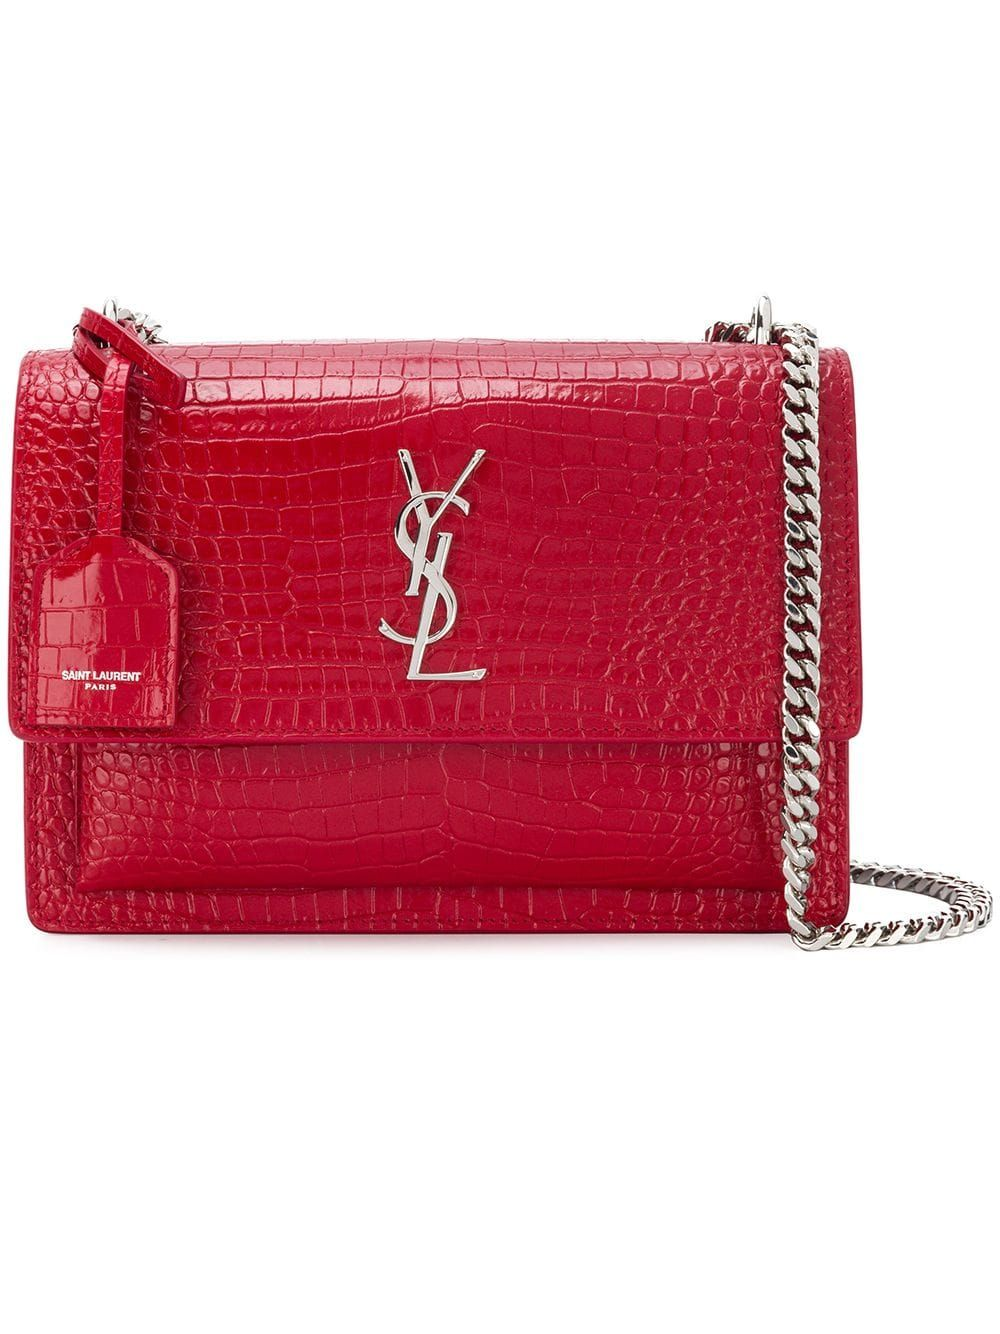 01bdb6539c0 Saint Laurent Sunset shoulder bag - Red | Products in 2019 | Ysl ...